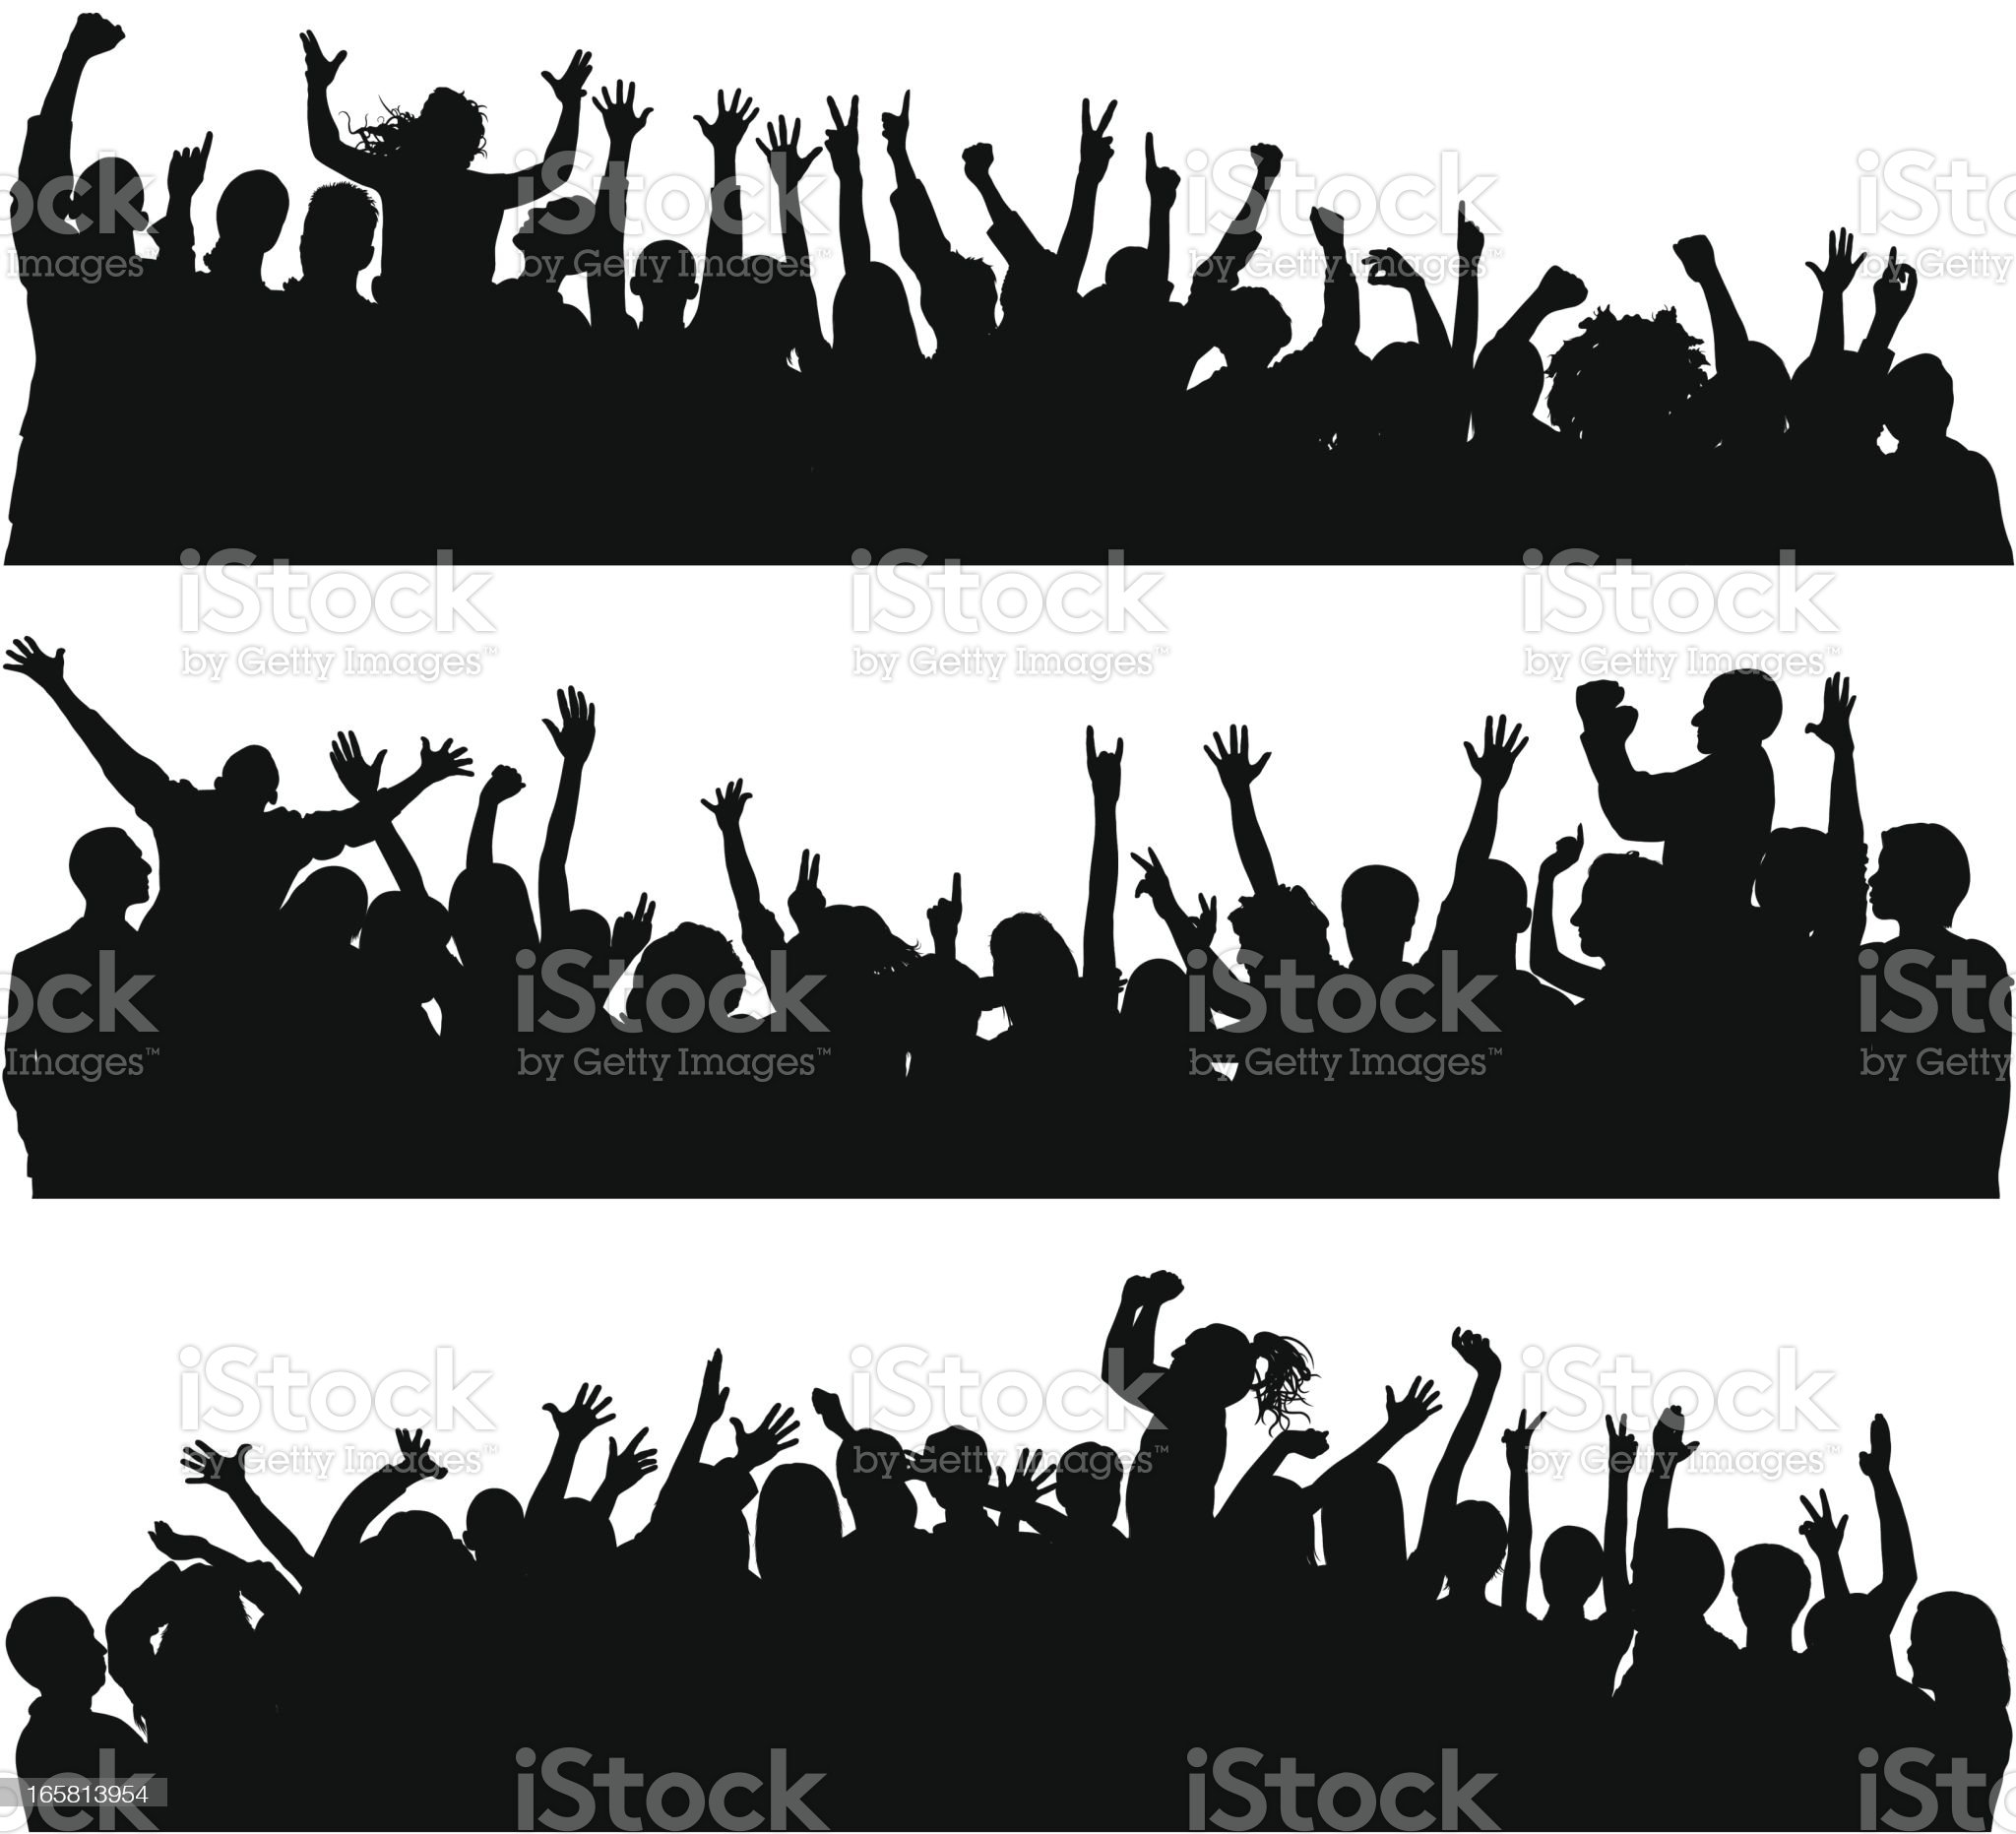 Crowd (Over Seventy Complete Silhouettes- Clipping Path Hides the Legs) royalty-free stock vector art